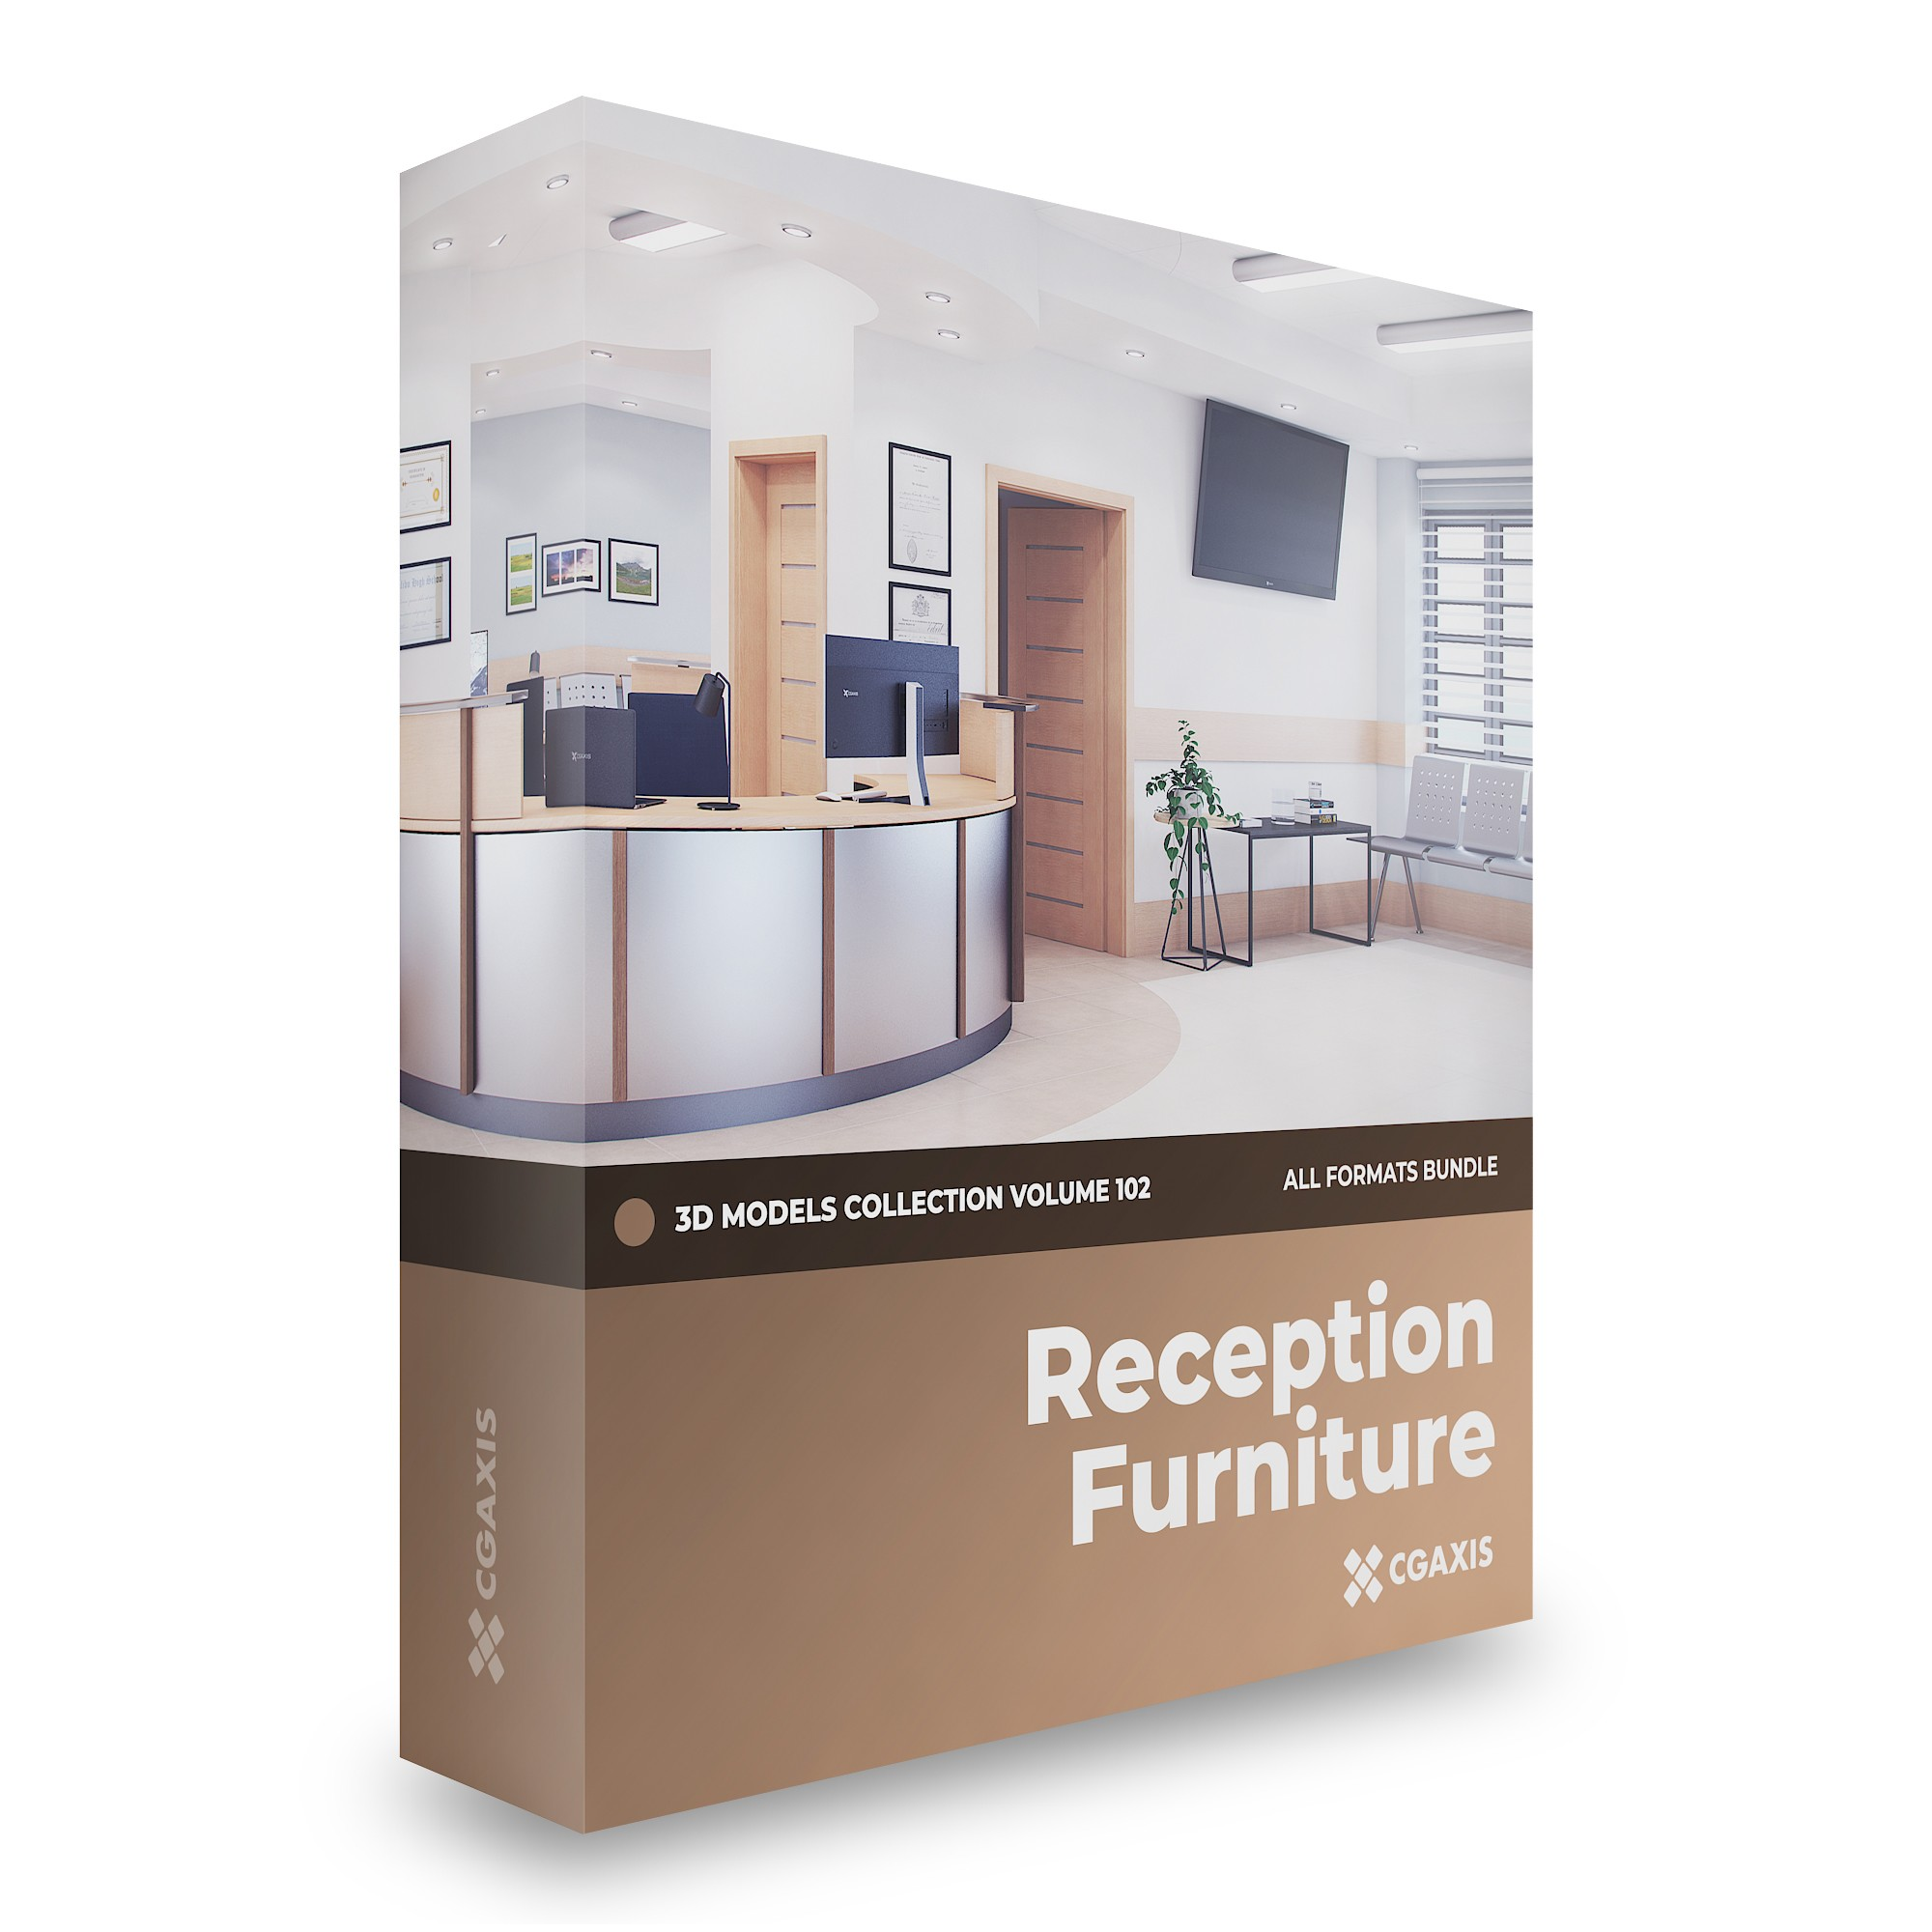 Reception Furniture 3D Models Collection - Volume 102